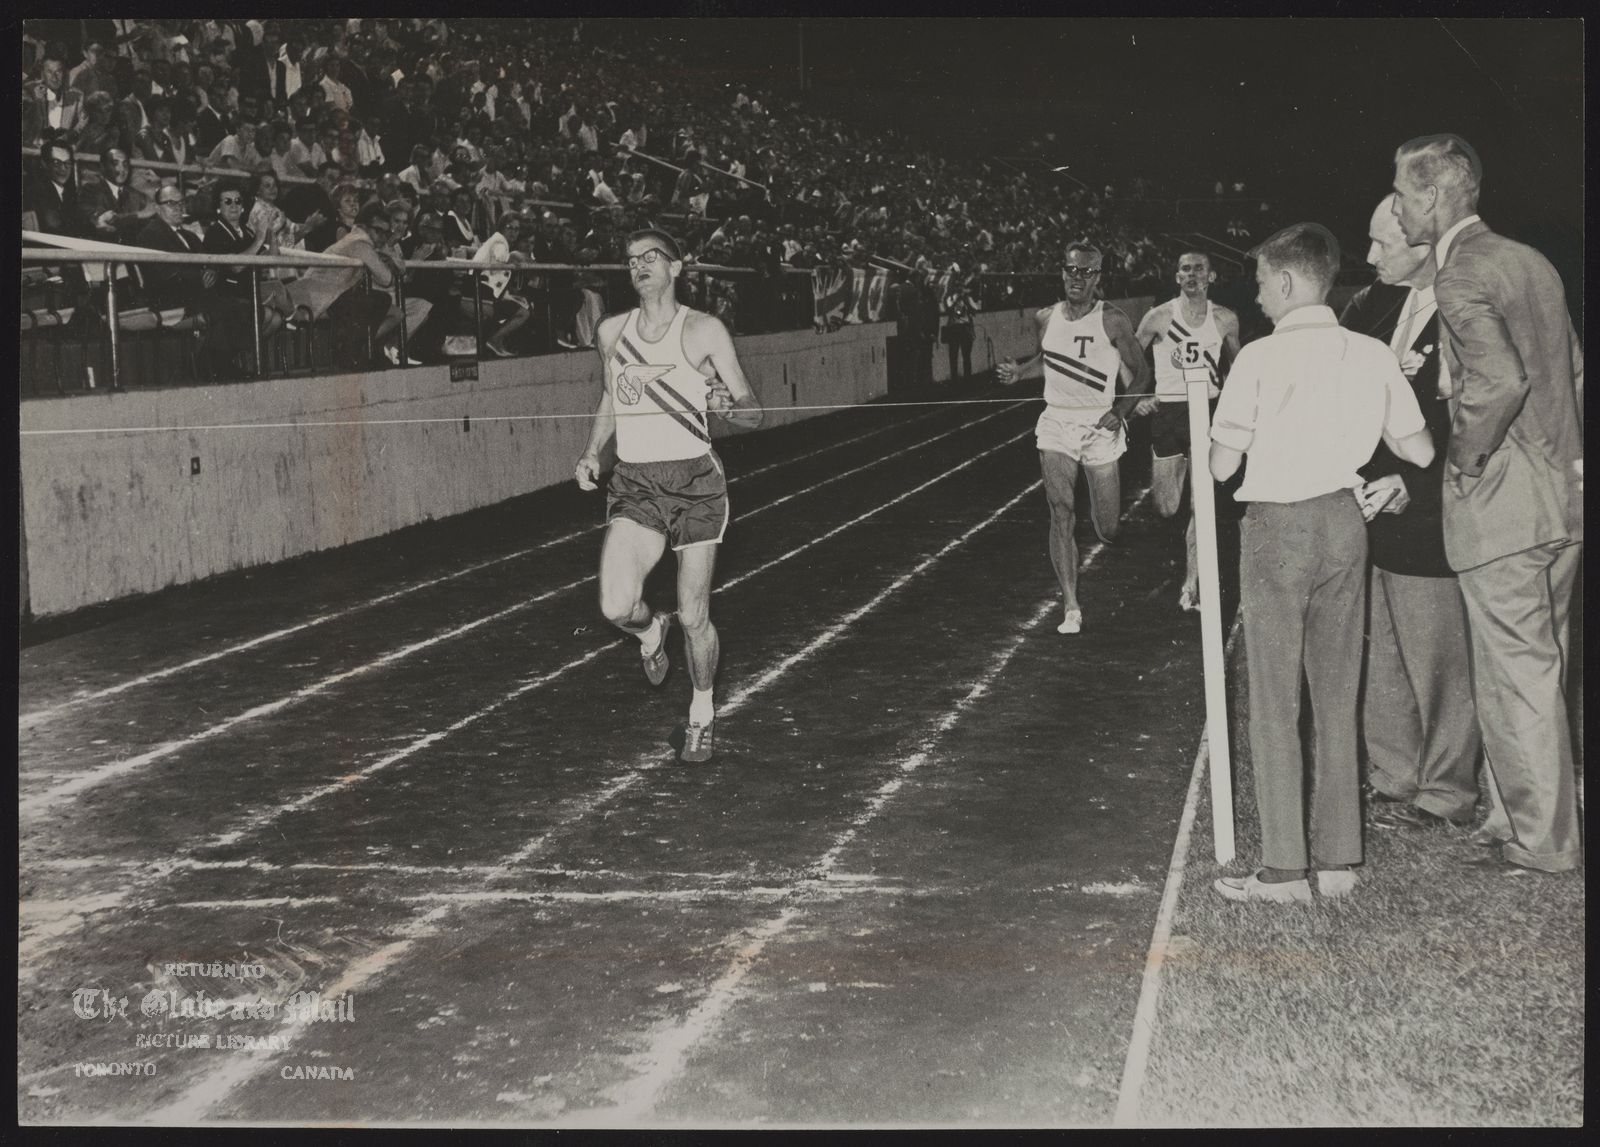 Bill CROTHERS Sprinting to the front on the last lap, Crothers easily wins mile race in 4:02.4 at Police Games.